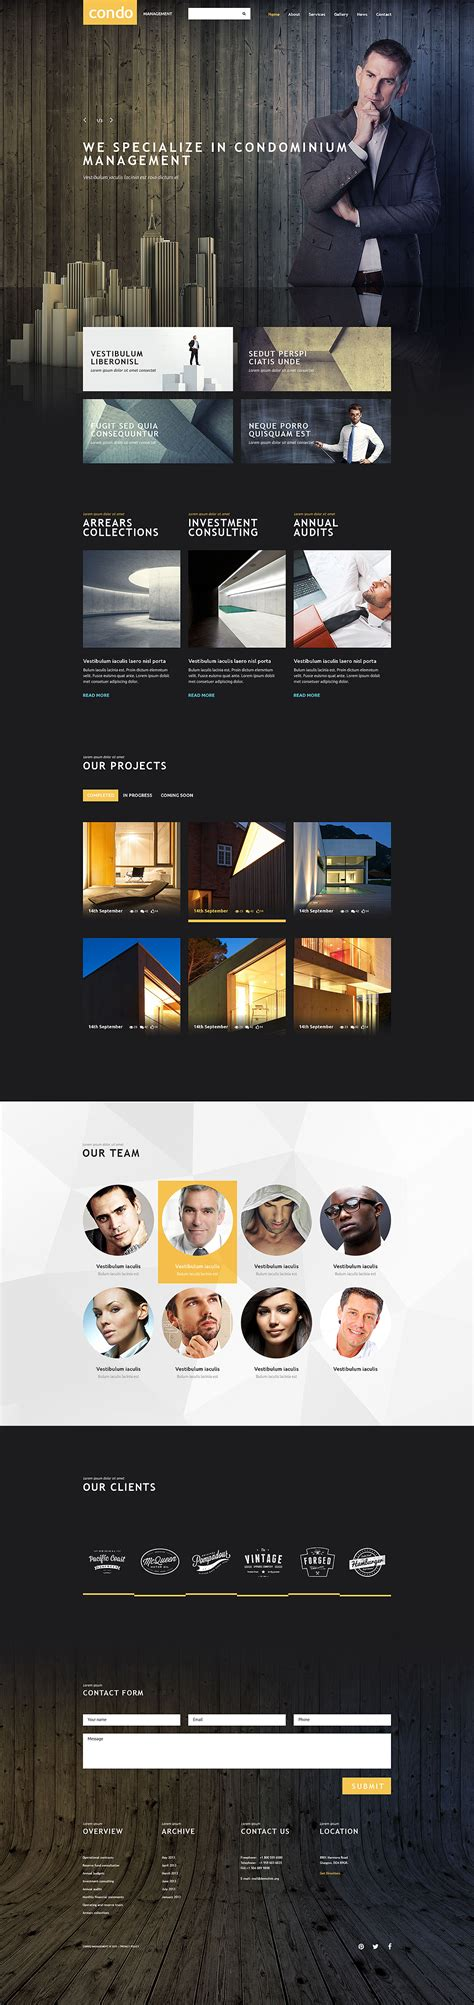 Condo Management Responsive Website Template With Parallax Carousel Condo Website Templates